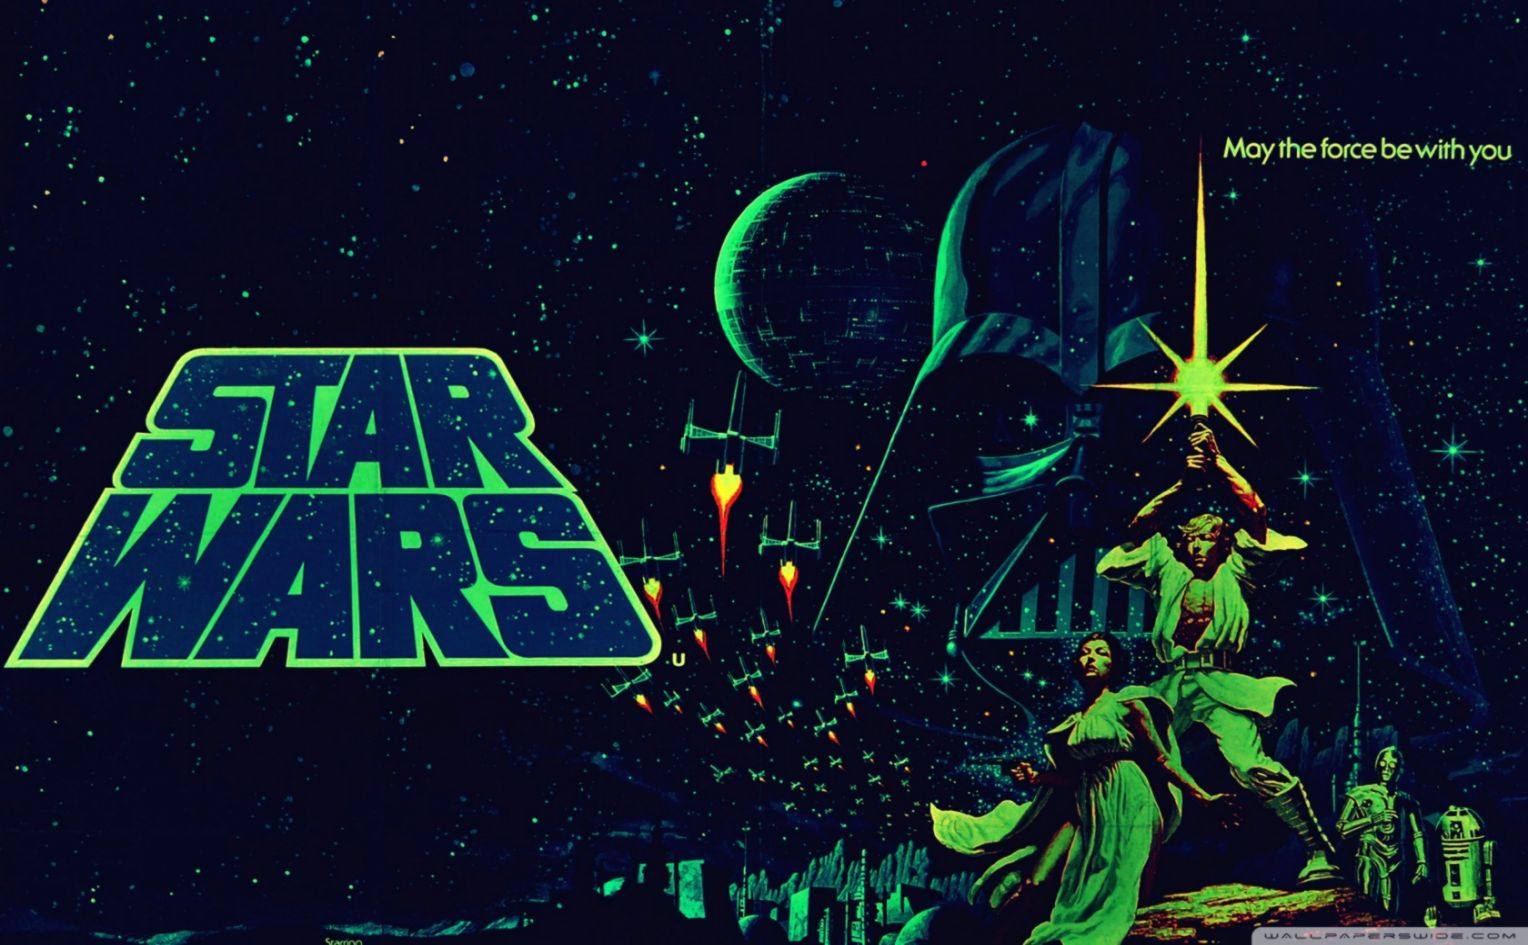 Classic Movie Star Wars Wallpaper Its Wallpapers